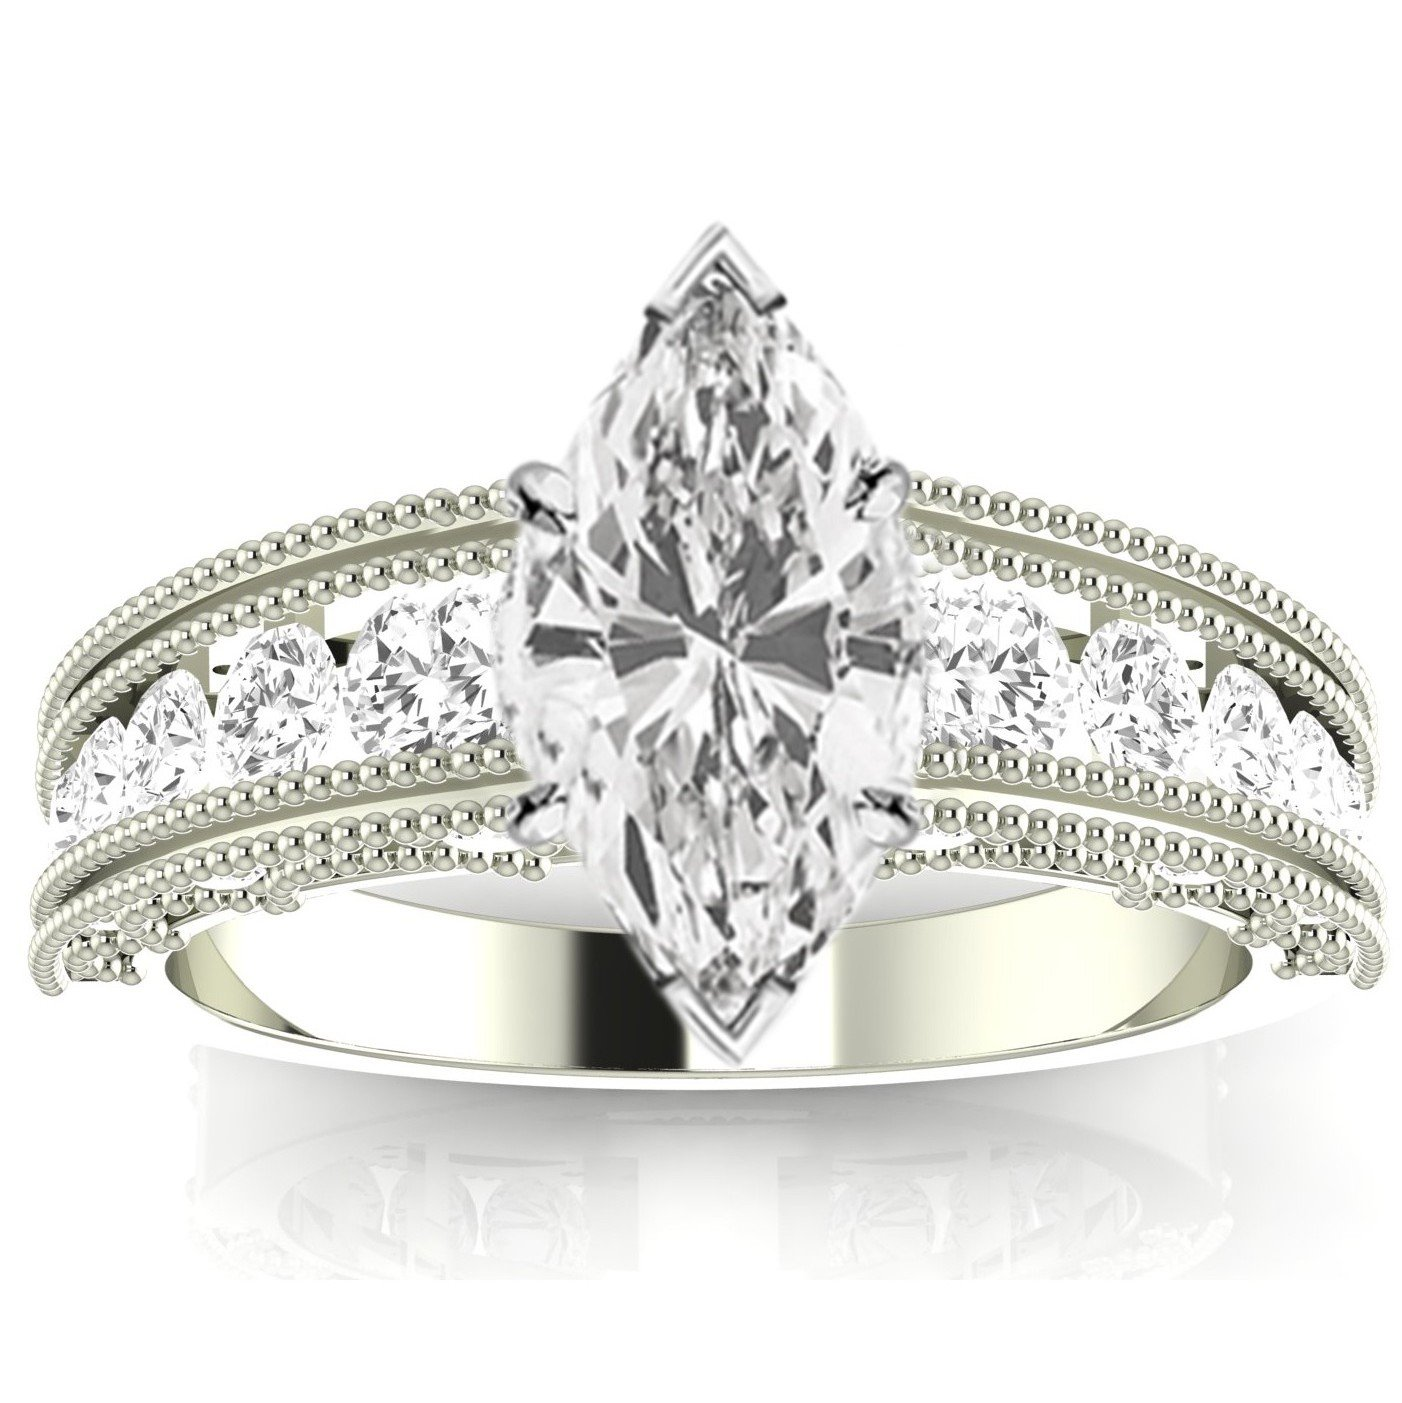 2.1 Carat t.w. 14K White Gold Antique / Vintage Style Channel Set Round Diamond Engagement Ring with Milgrain with a 1.5 Ct Forever Classic Marquise Moissanite Center